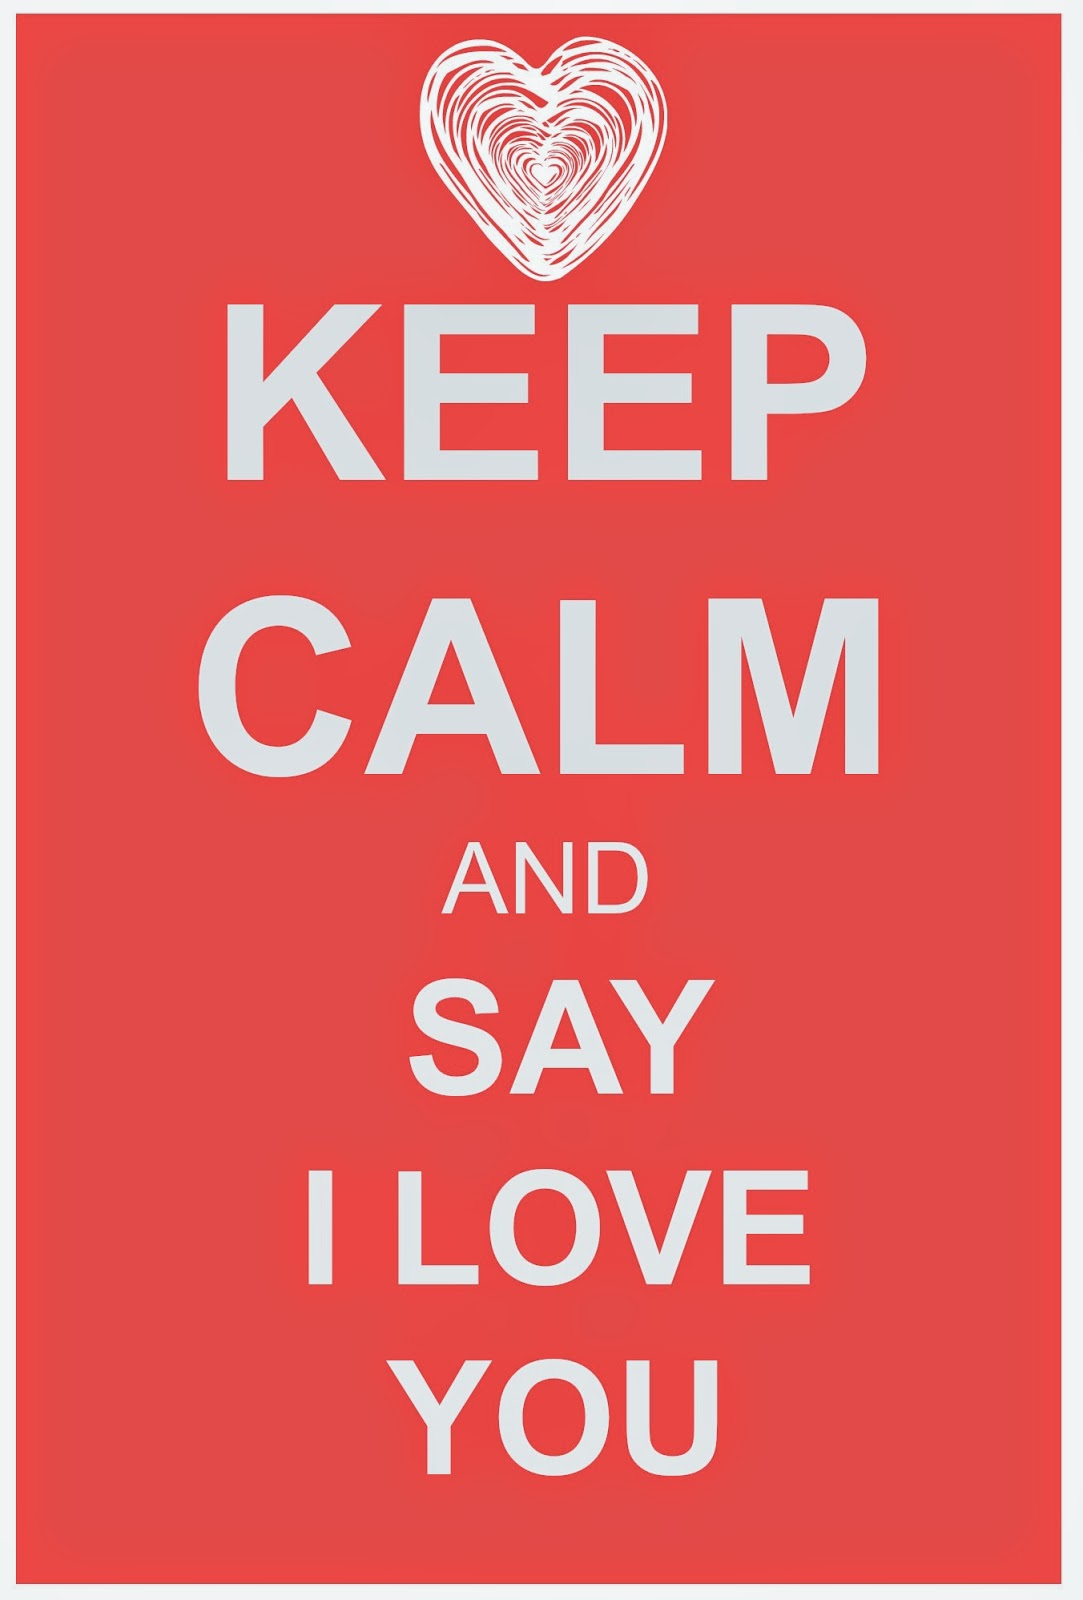 Keep calm and say i love you